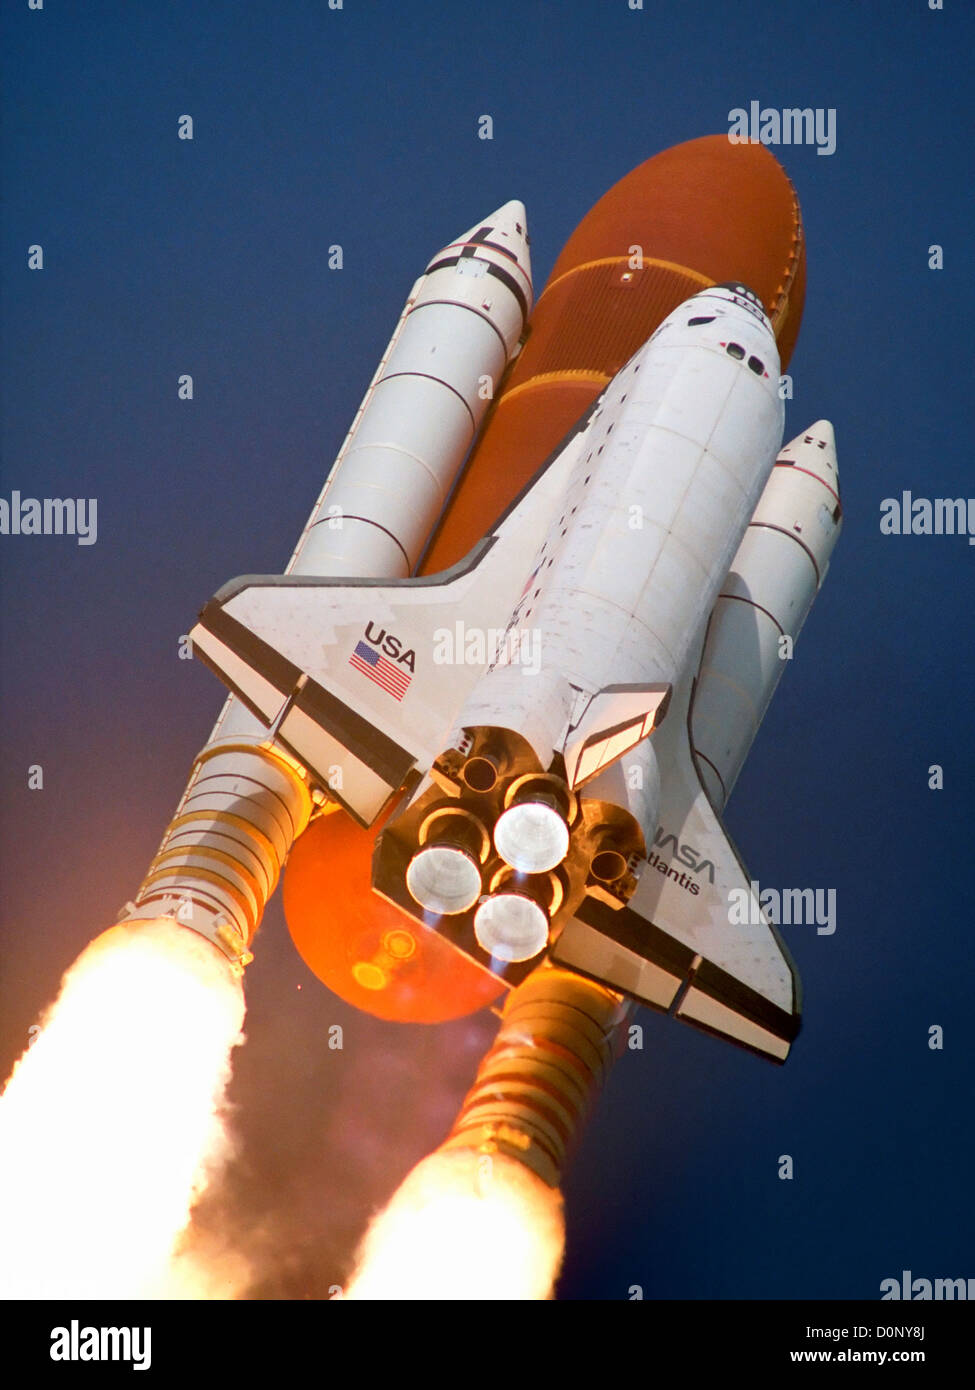 Sts 45 Stock Photos & Sts 45 Stock Images - Alamy